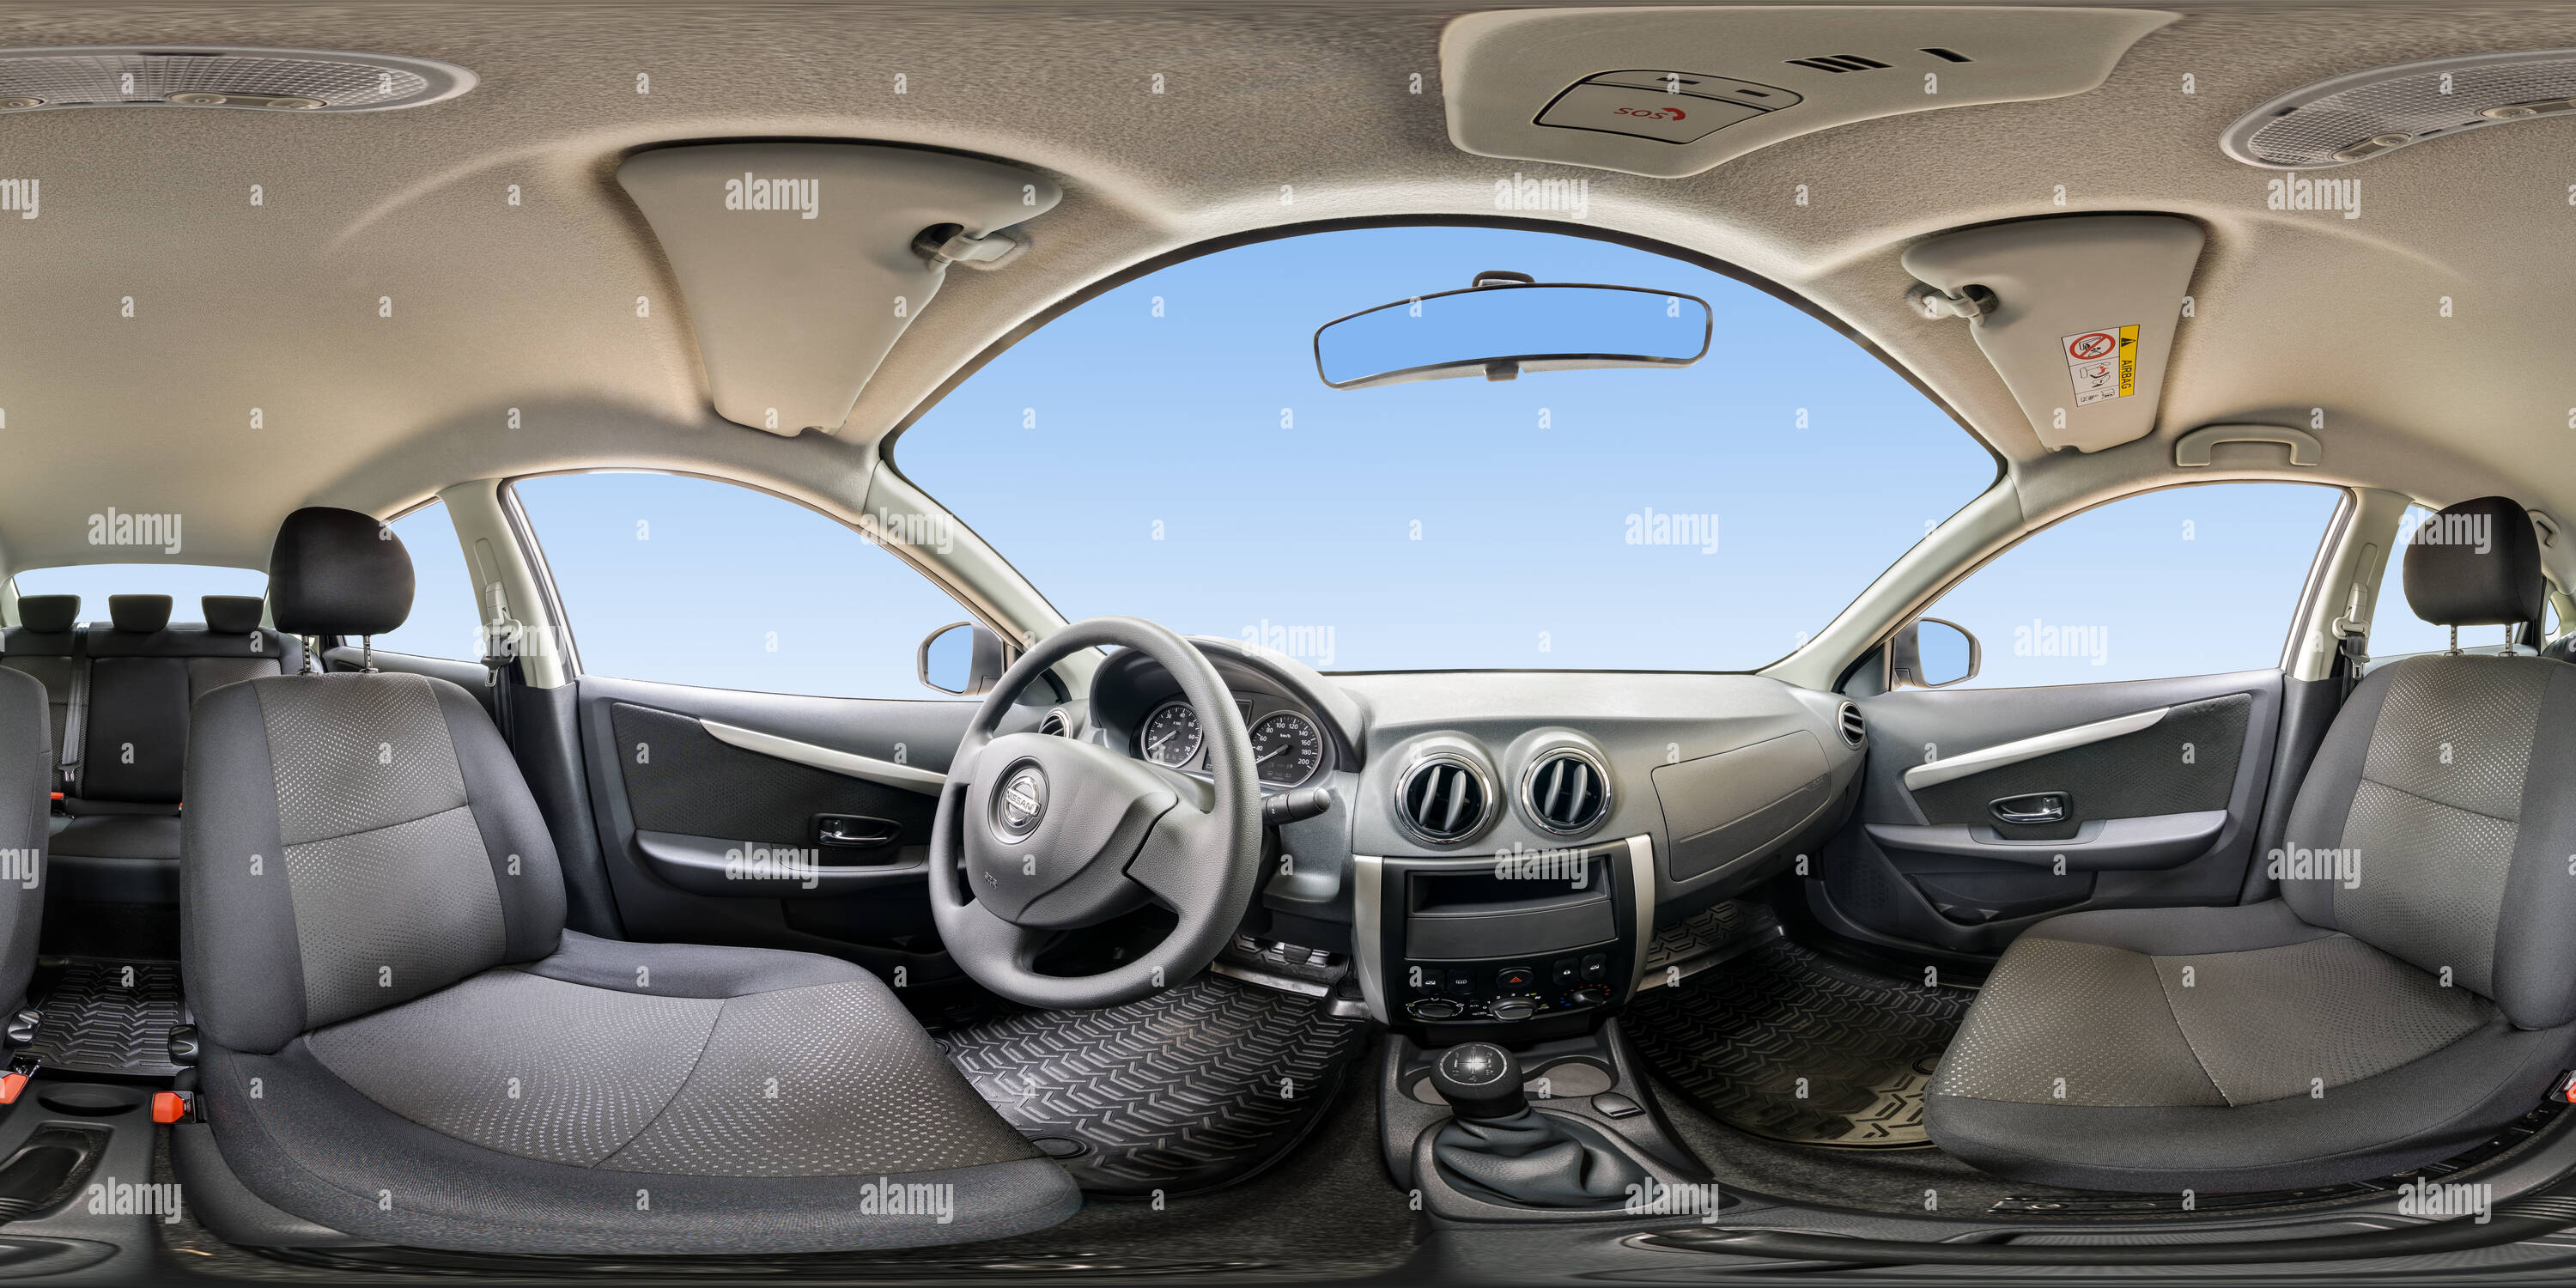 360 View of Inside of Nissan Almera 243746180 - Alamy